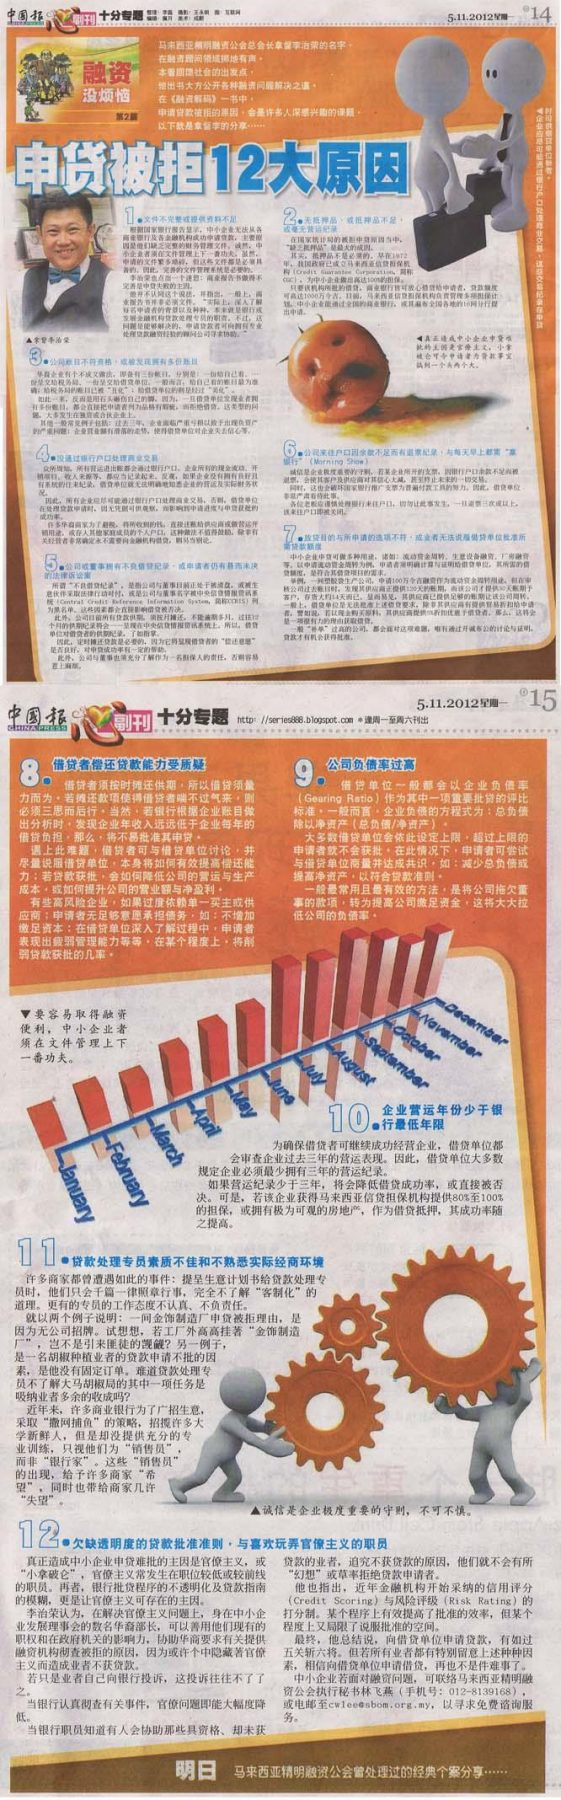 China Press - Feature Series 2 - Page 14 & 15. Special interview with Dato Lee Chee Weng (05-11-2012)